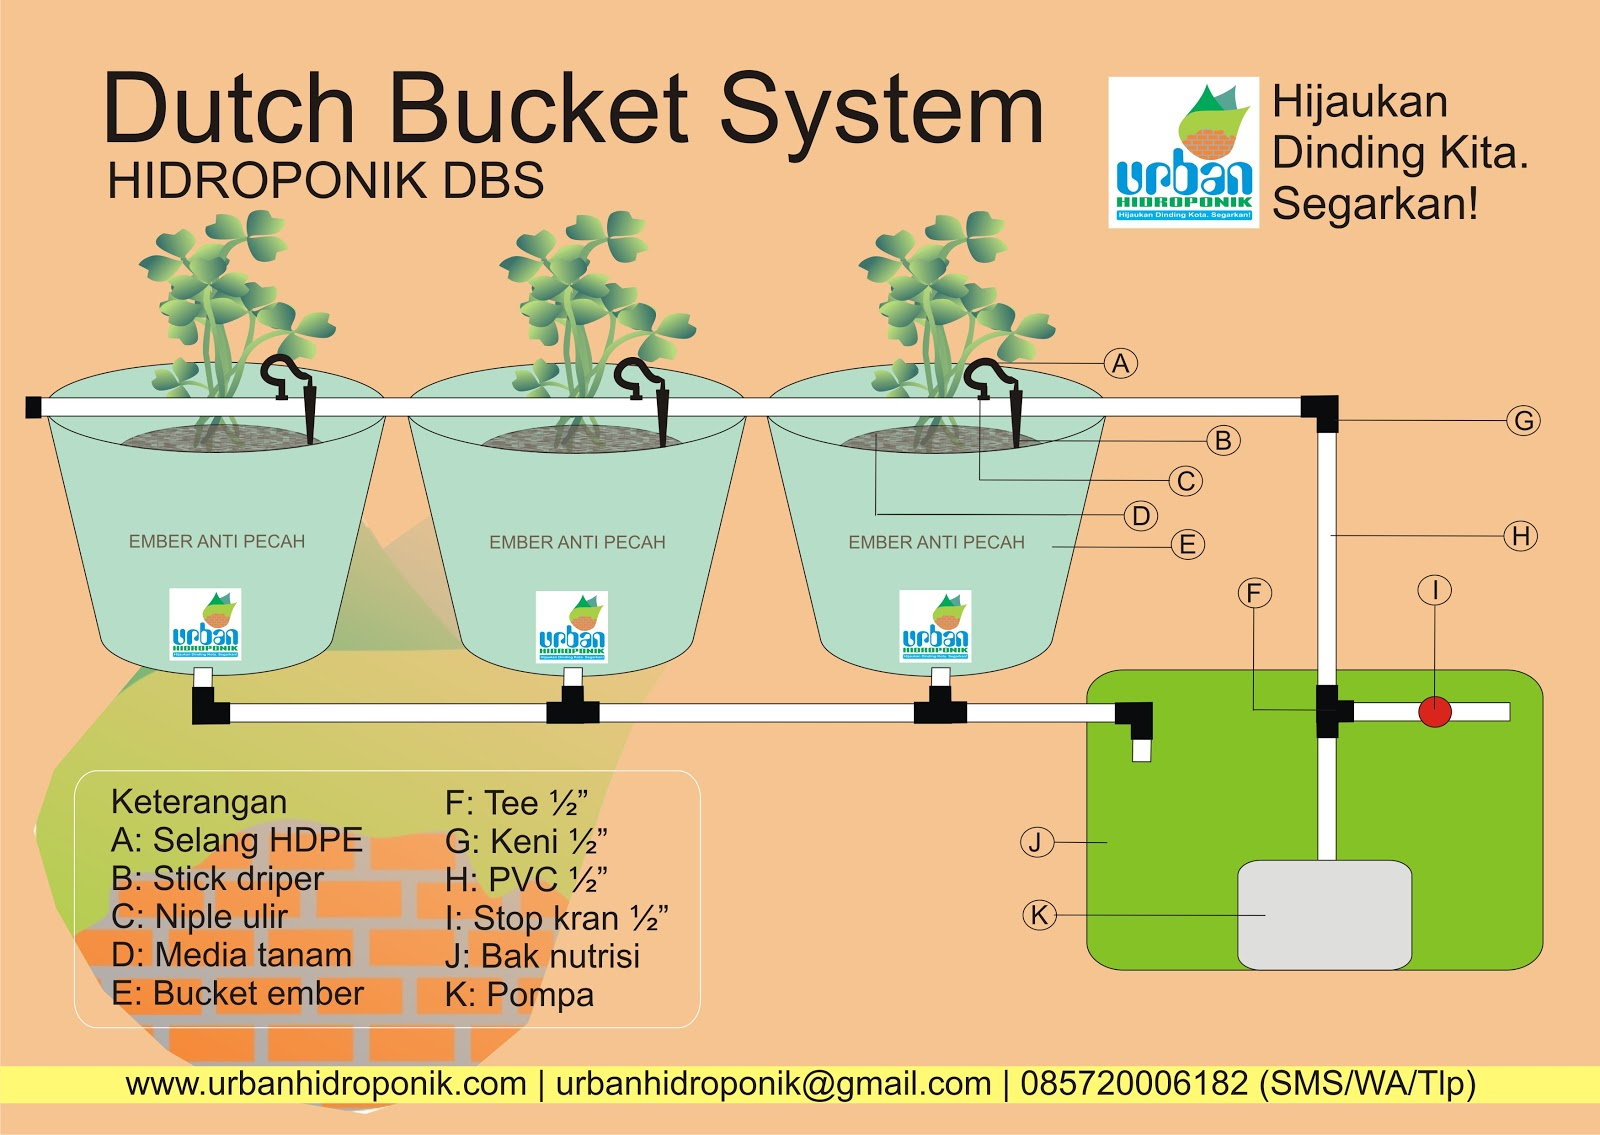 Cara Membuat Hidroponik Dbs Dutch Bucket System Urban